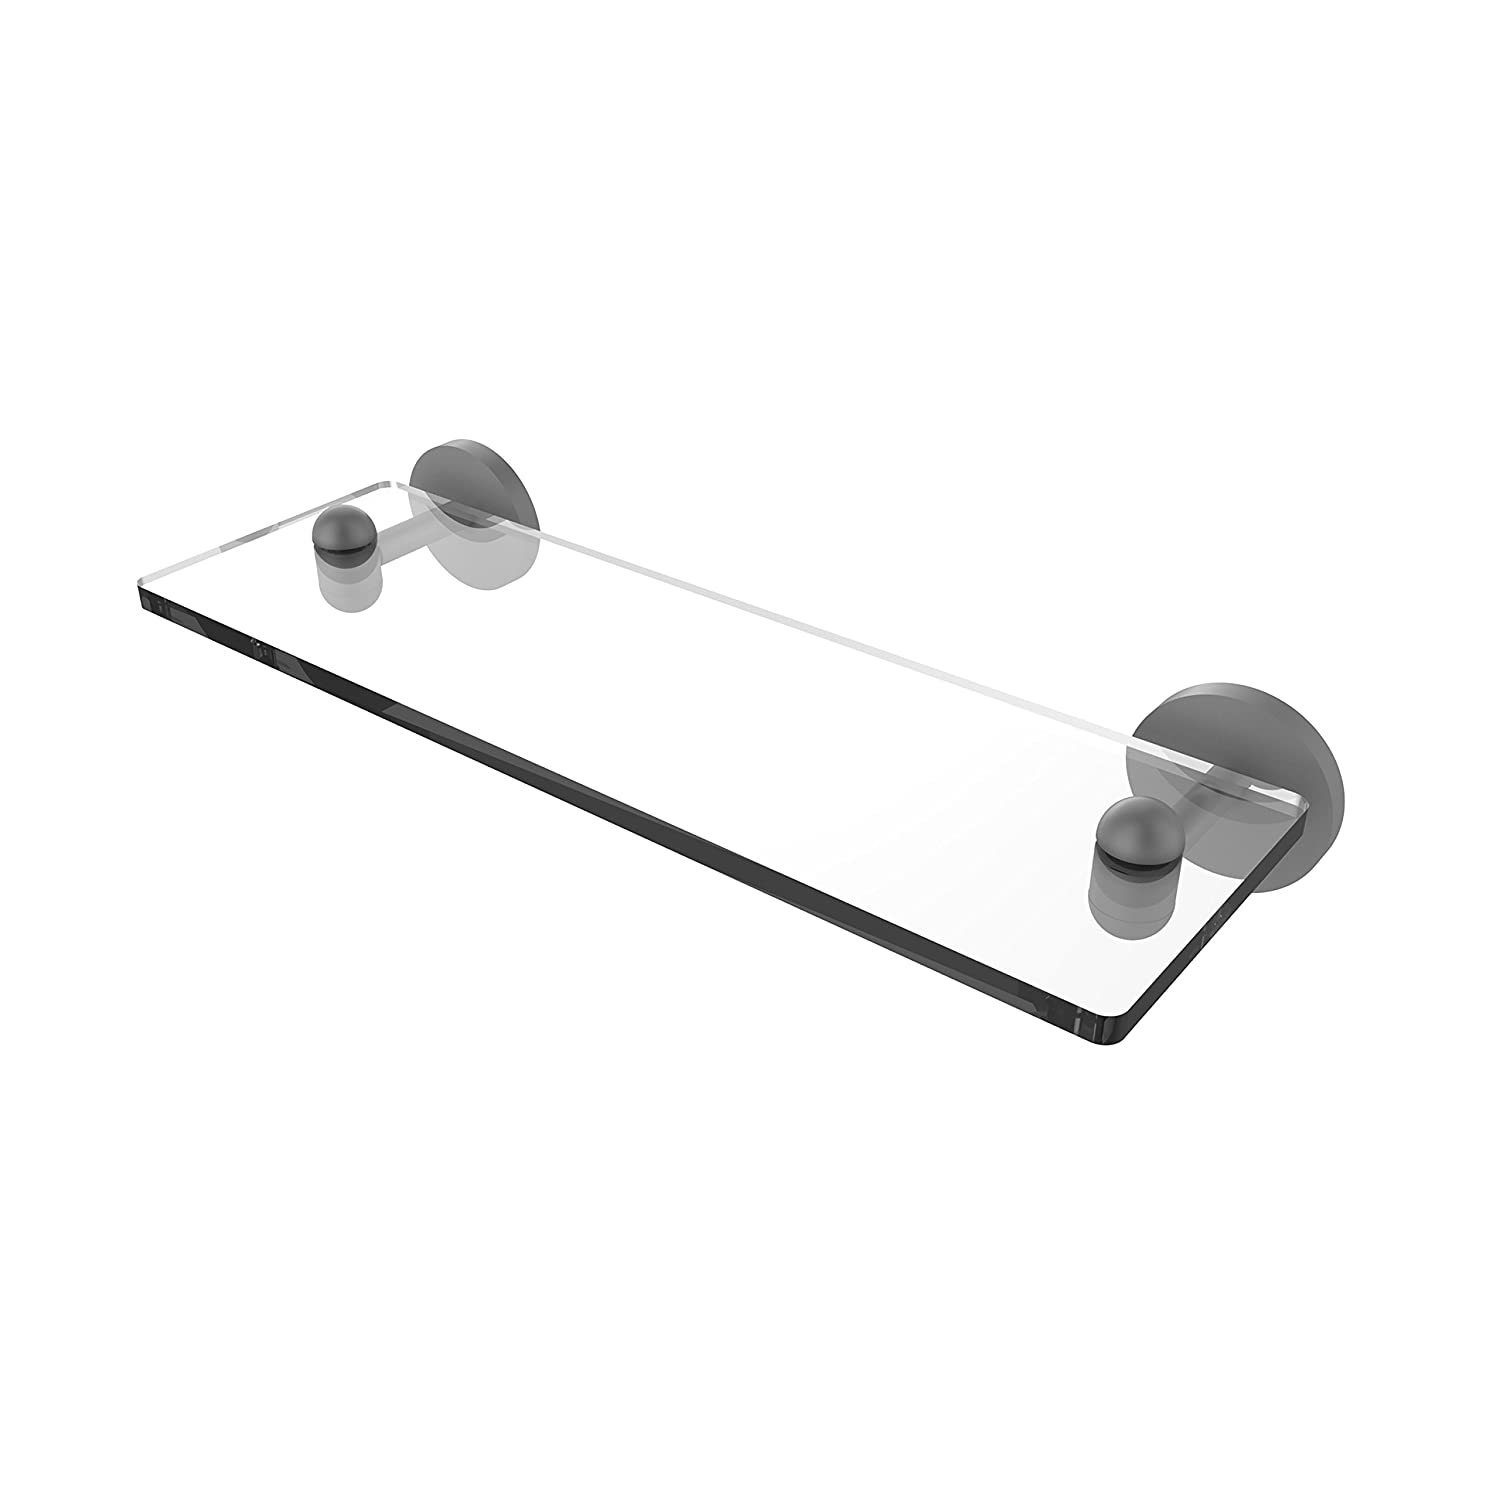 Bathroom Shelves Allied Brass Ta-1/16-gym Tango Collection 16 Inch